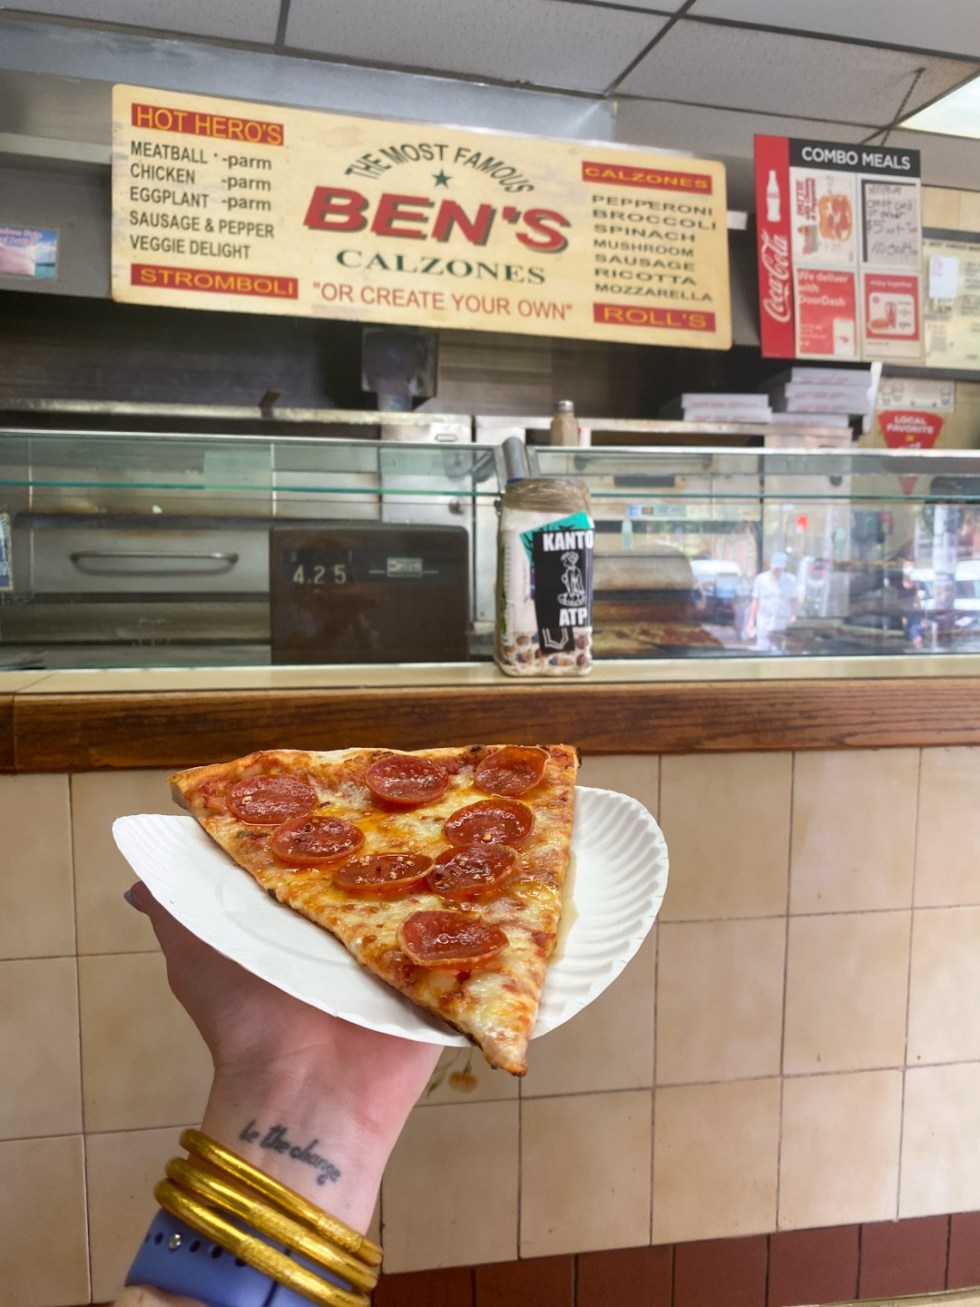 NYC Summer Weekend: Things to Do in NYC in the Summer - I'm Fixin' To - @imfixintoblog   NYC Summer Weekend by popular NC travel blog, I'm Fixin' To: image of a woman holding a slice of pepperoni pizza at Ben's Calzones.